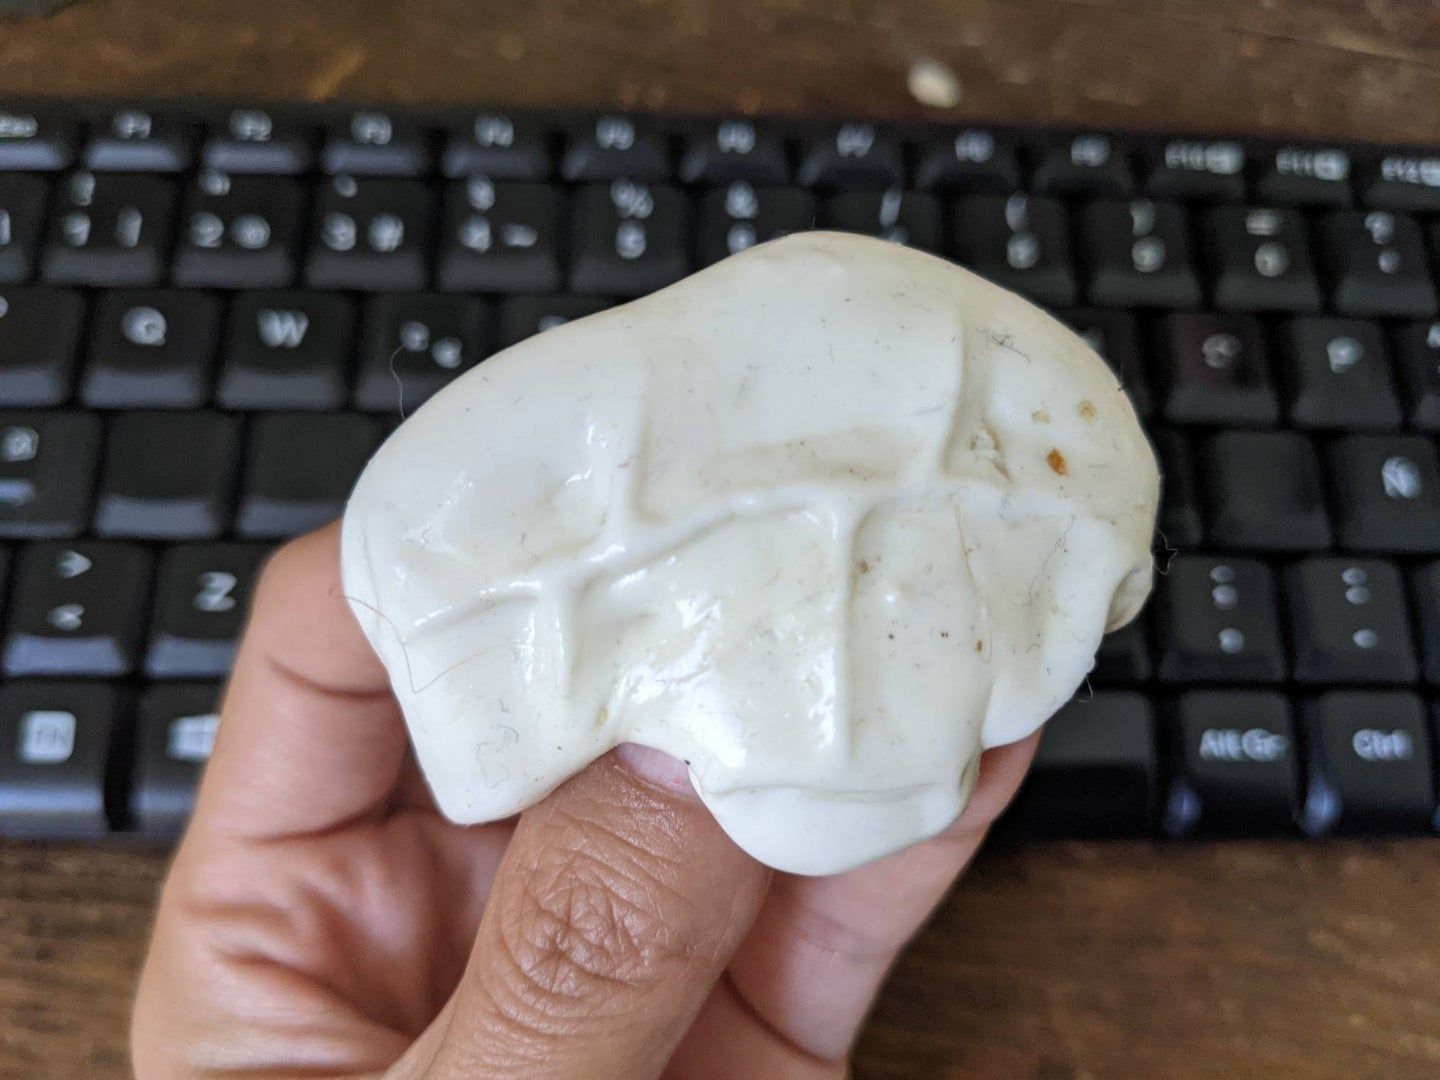 Hands holding slime with crumbs over a keyboard